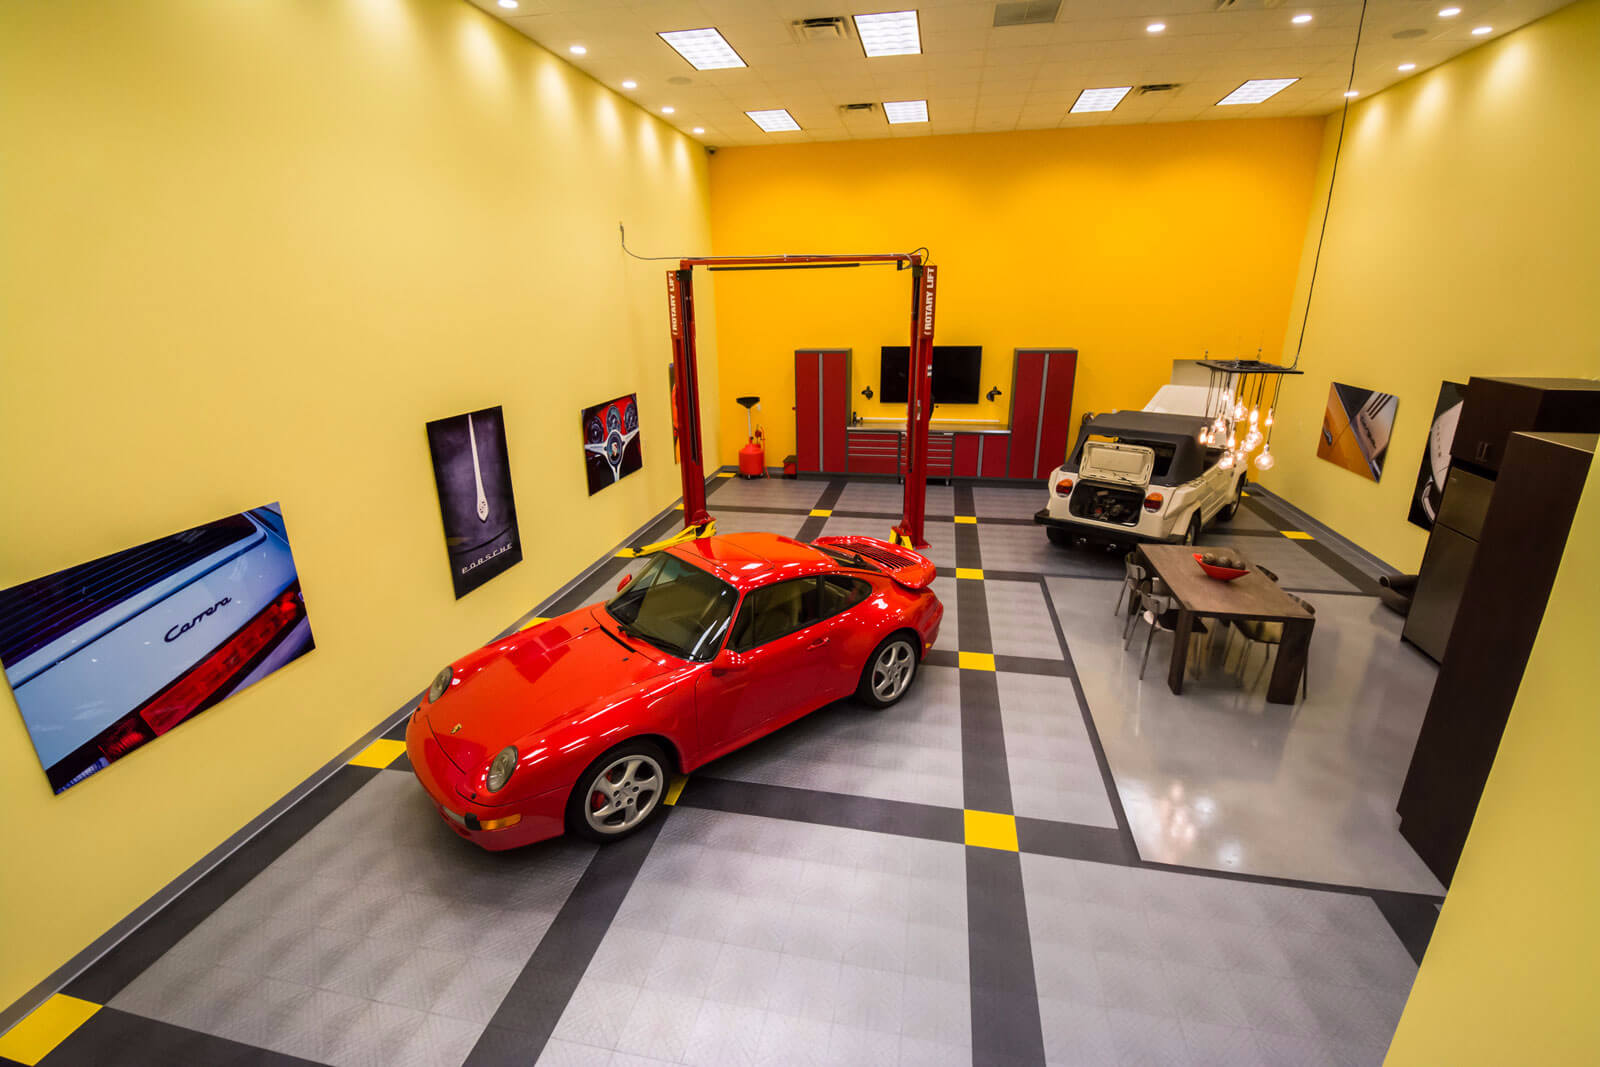 A Porsche and a VW thing in a garage with a lift and CircleTrac garage flooring